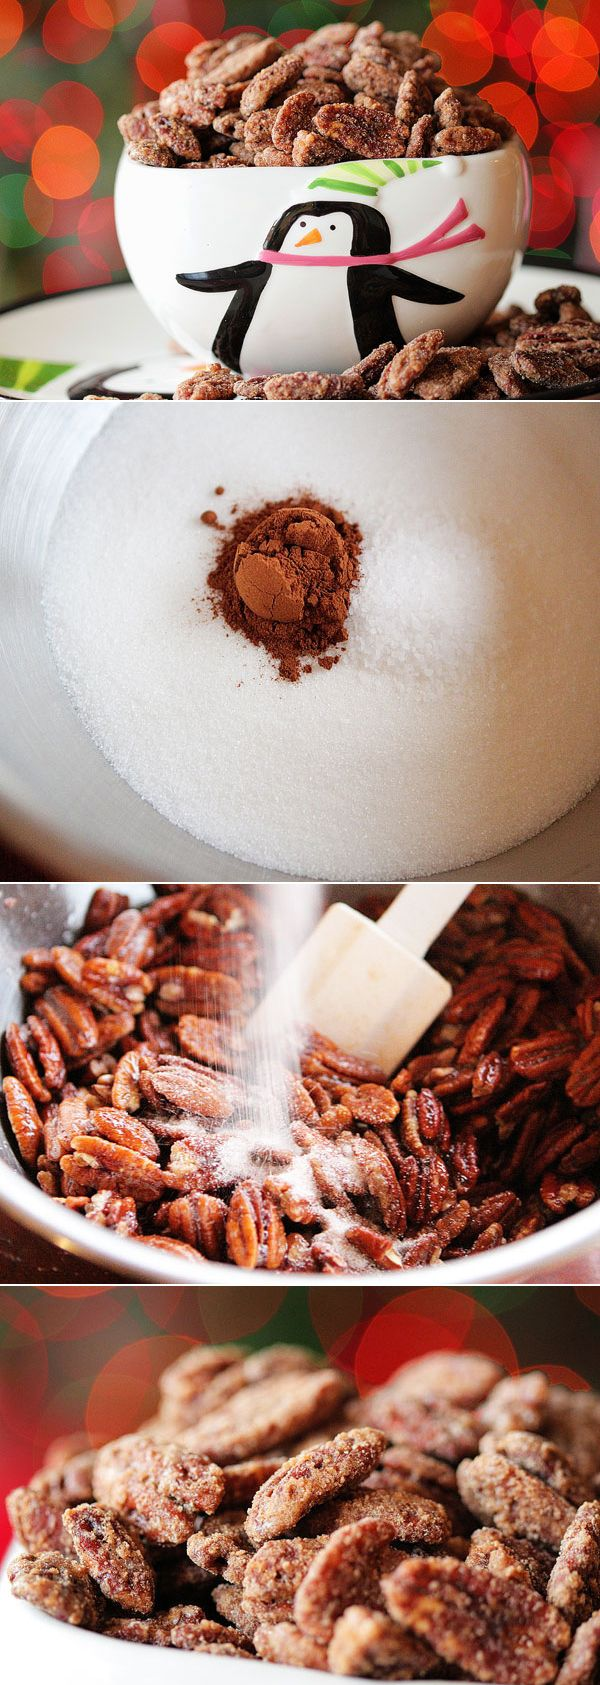 Cinnamon Sugar Roasted Pecans. Make these and your house will smell AMAZING for guests!! These are a must in our house at Christmas.